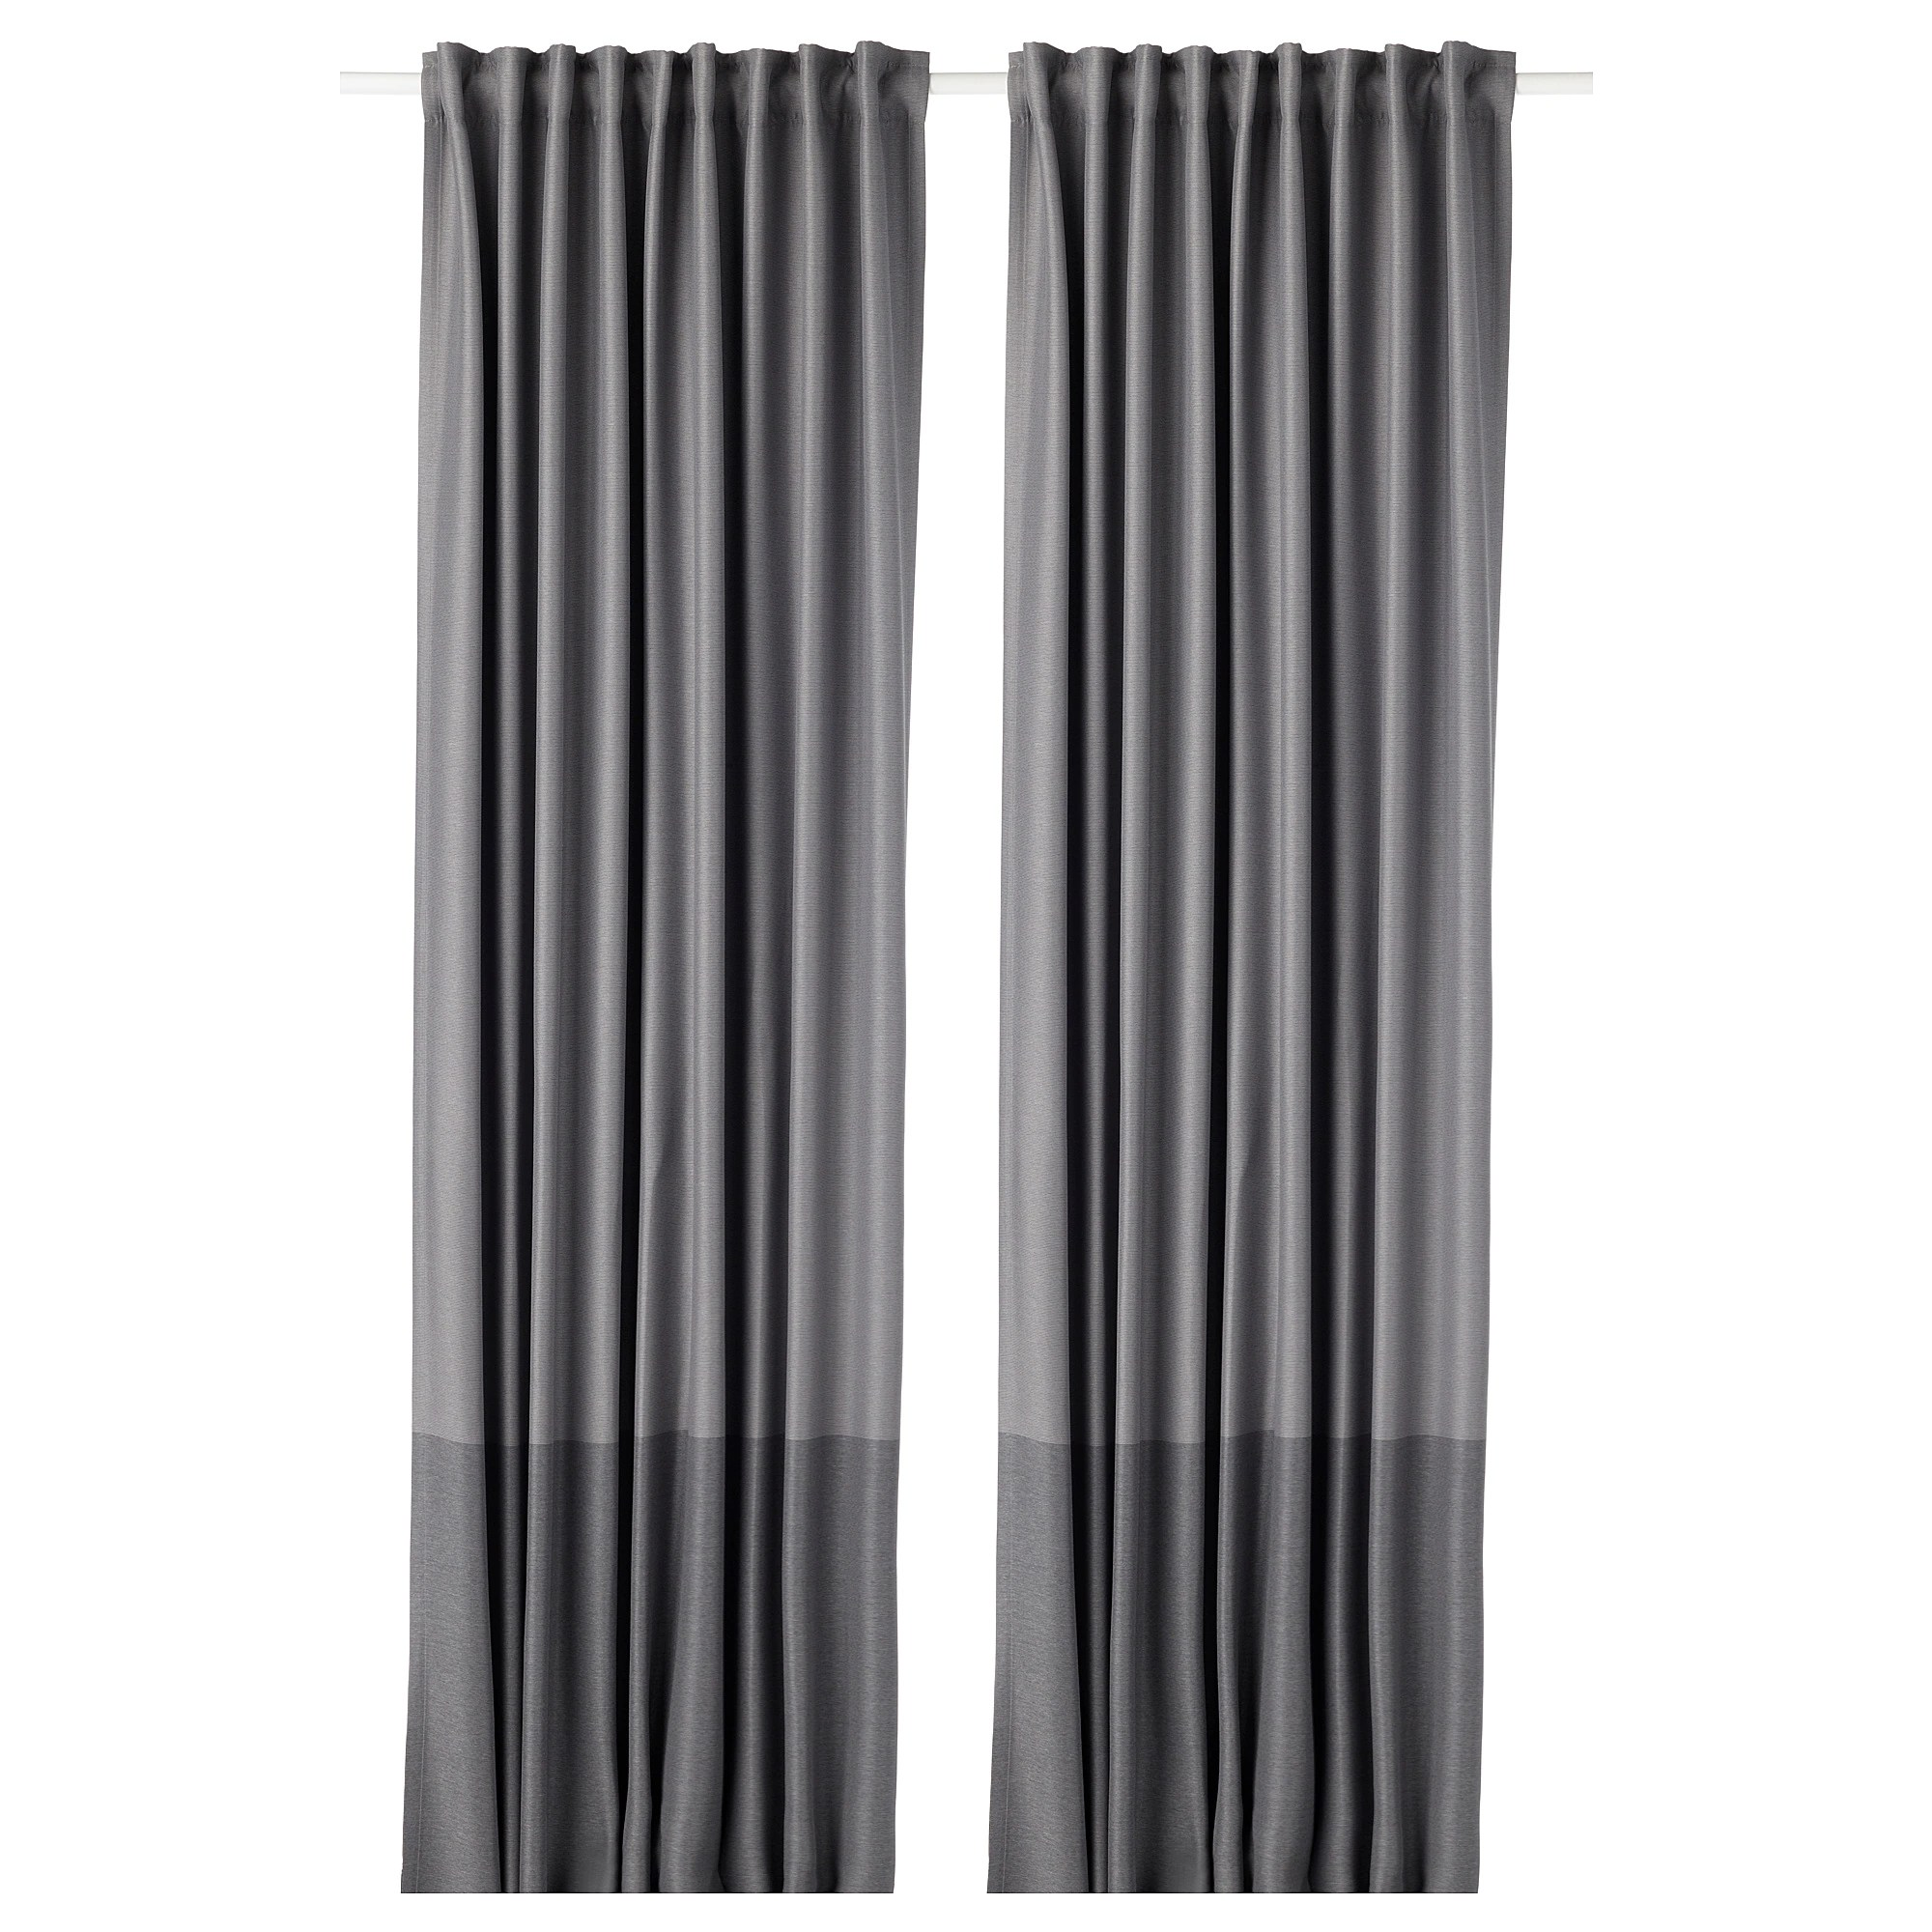 Window Coverings To Keep Heat Out Marjun Blackout Curtains 1 Pair Gray